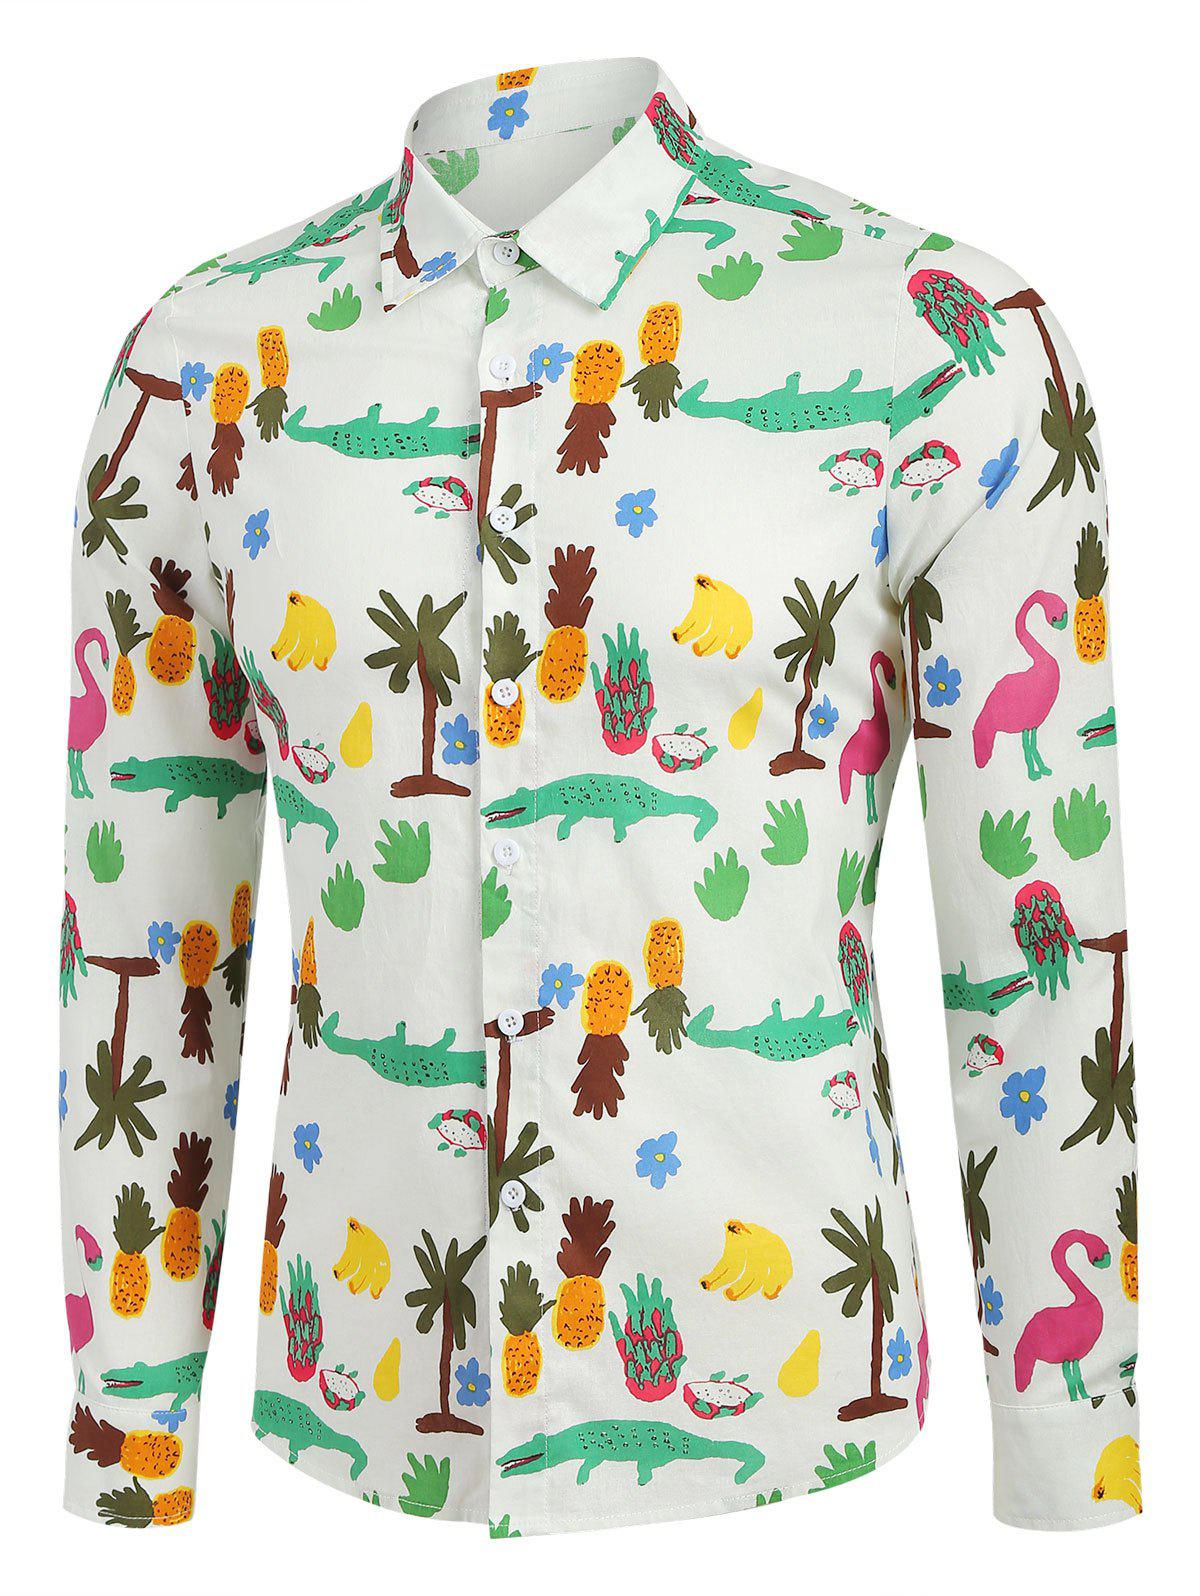 Shop Cartoon Tropical Print Long Sleeve Button Up Shirt